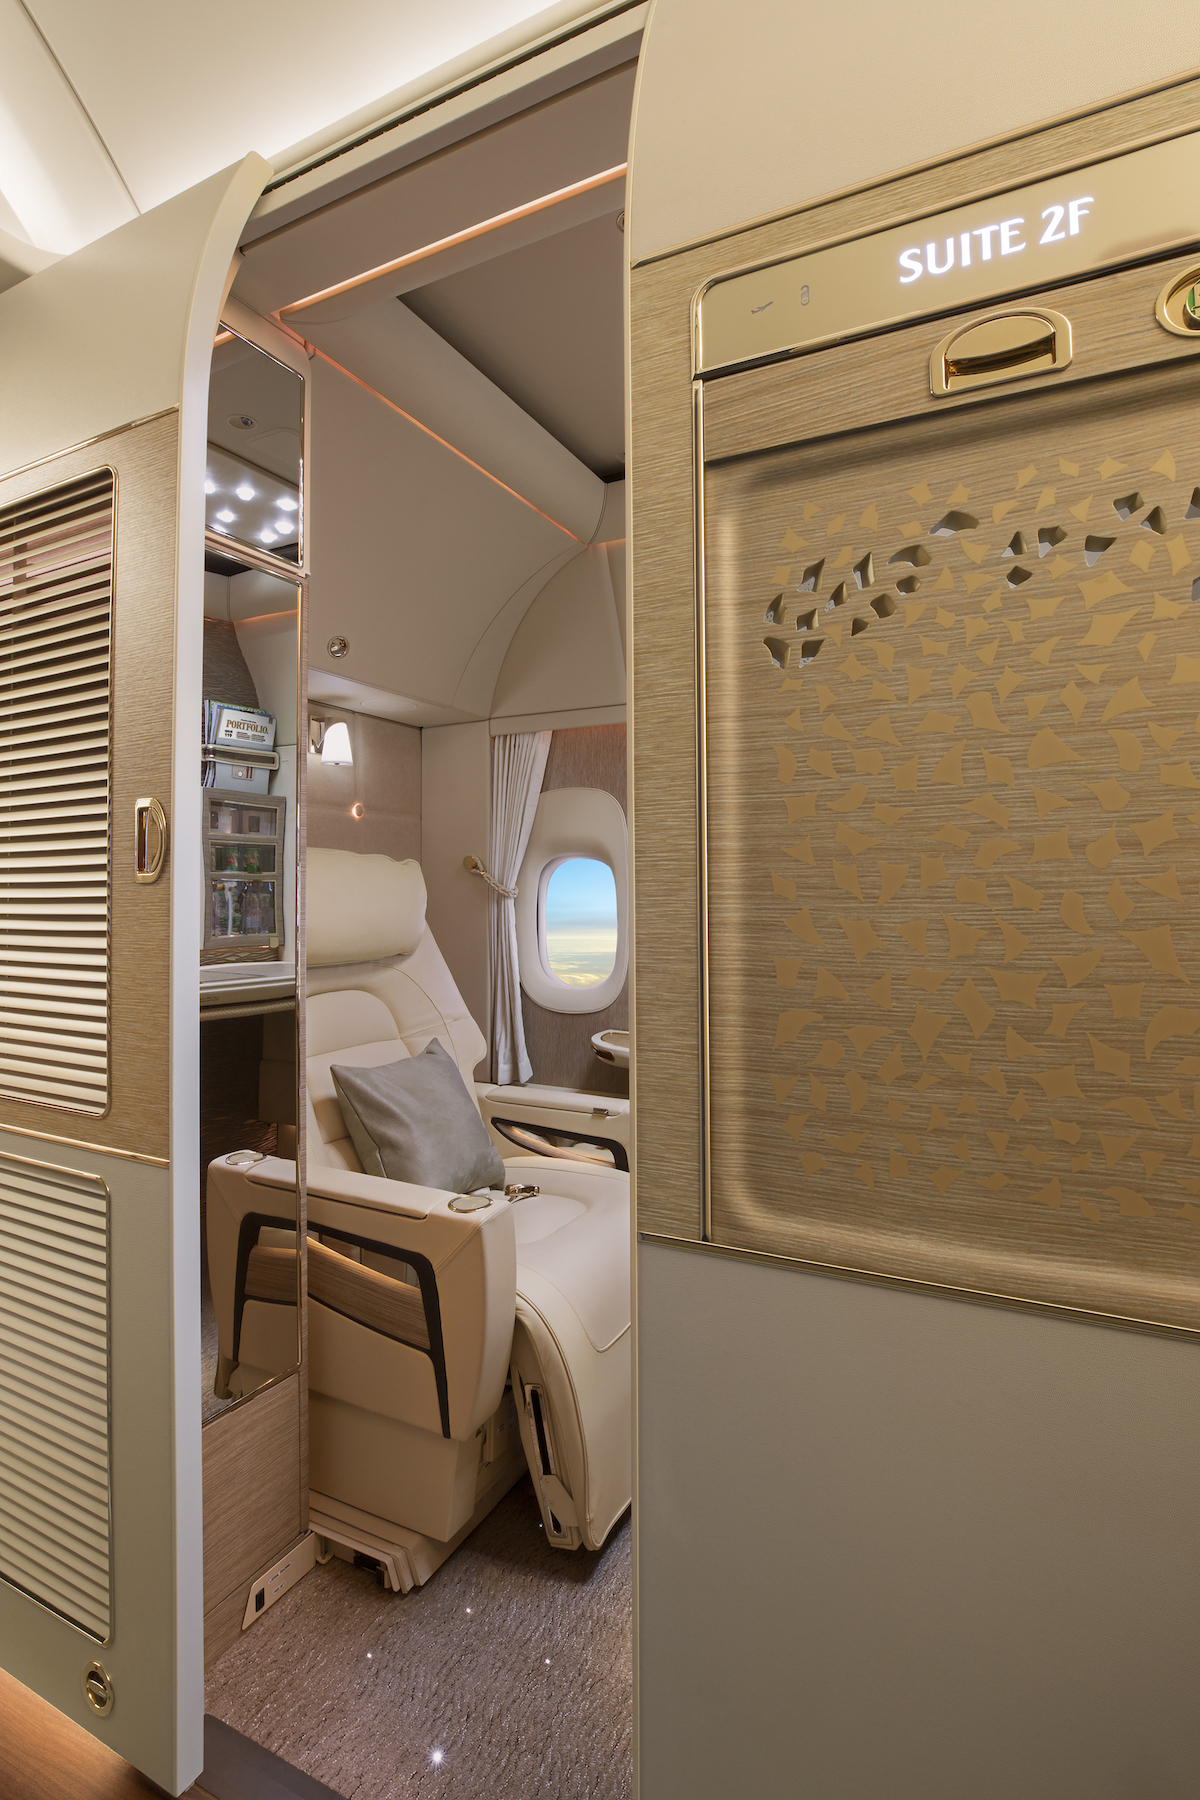 Emirates New First Class Suite, Fully Enclosed